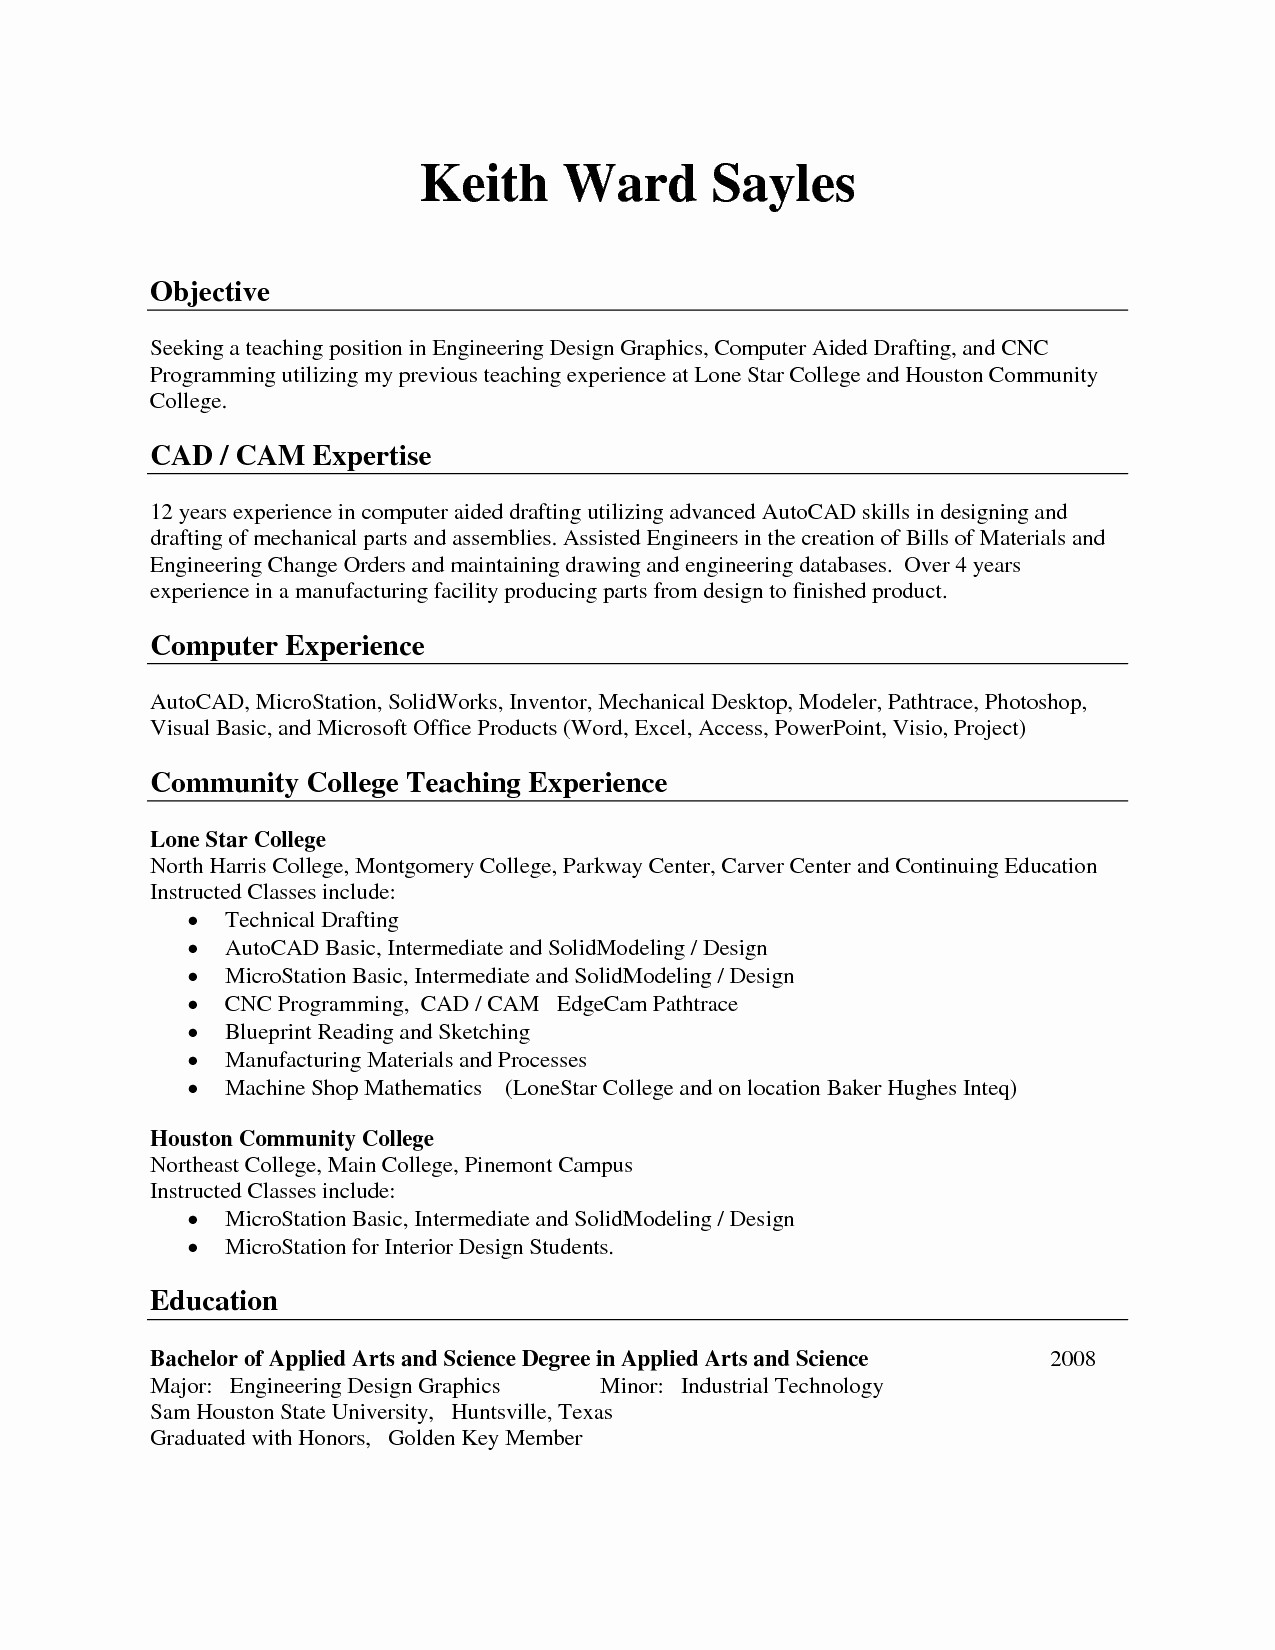 Interior Design Resume Examples - Drafting and Design Resume Examples Unique Resumes formats Save